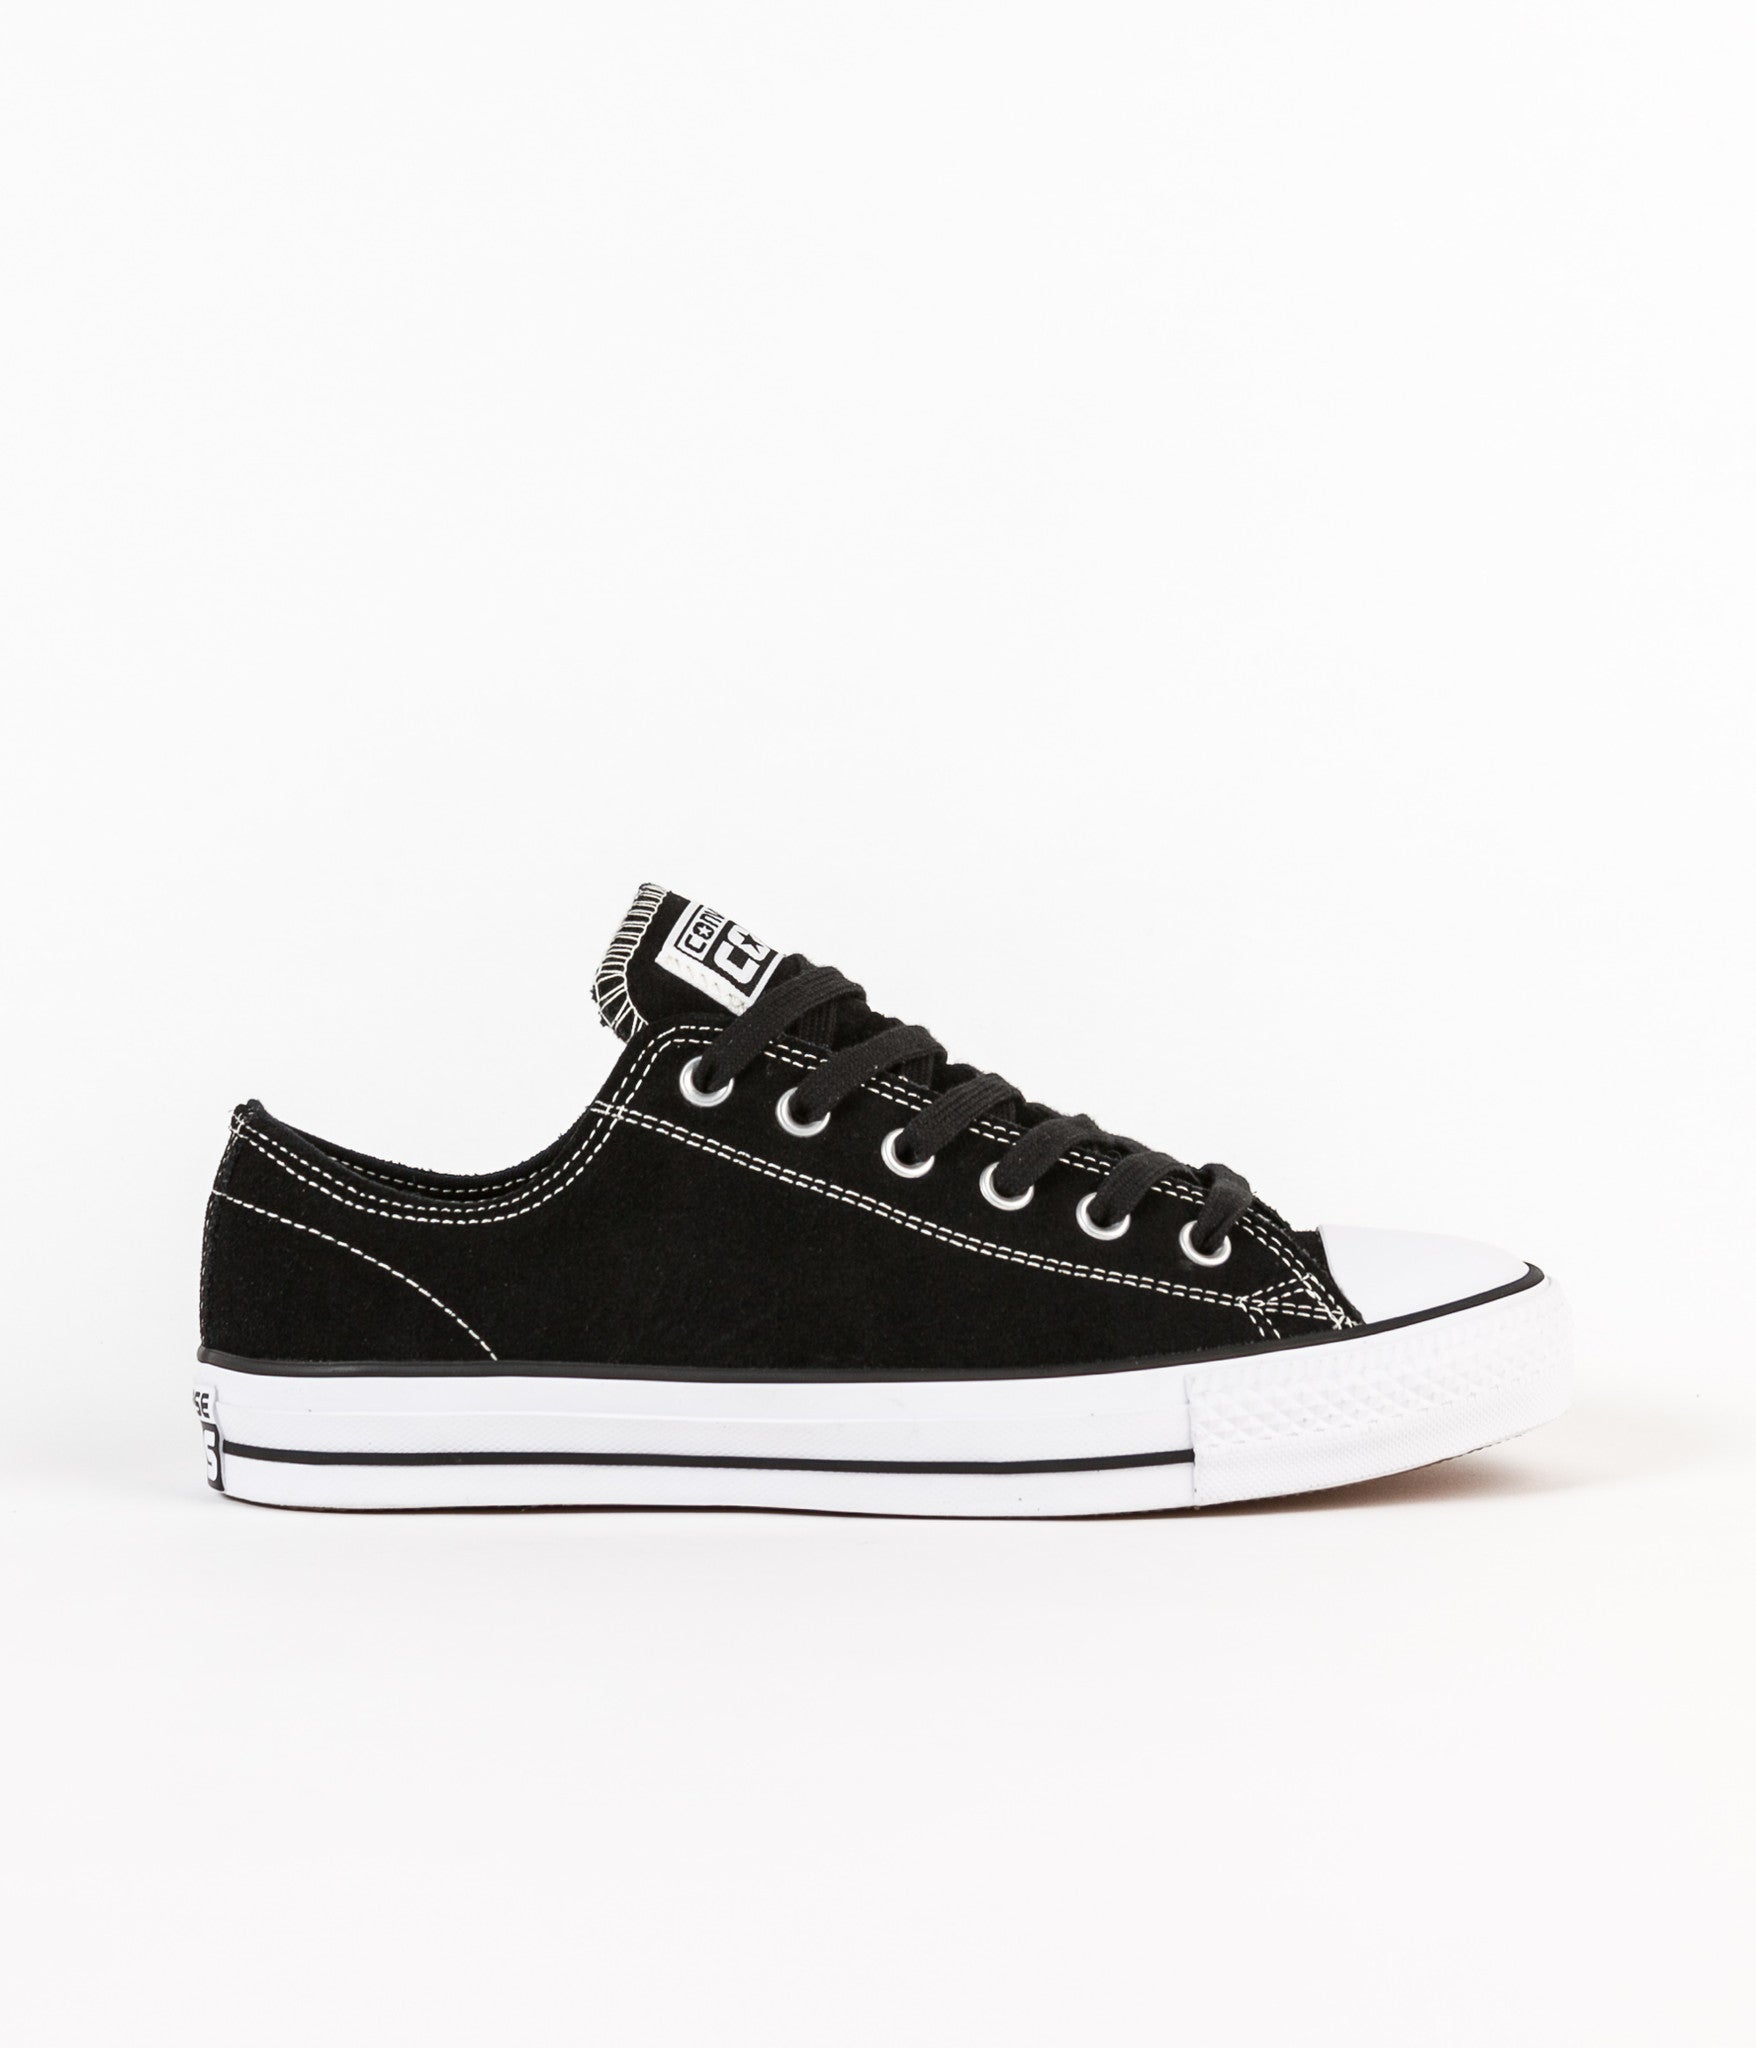 2b2ecd8fff50 Converse CTAS Pro Ox Shoes - Black   White